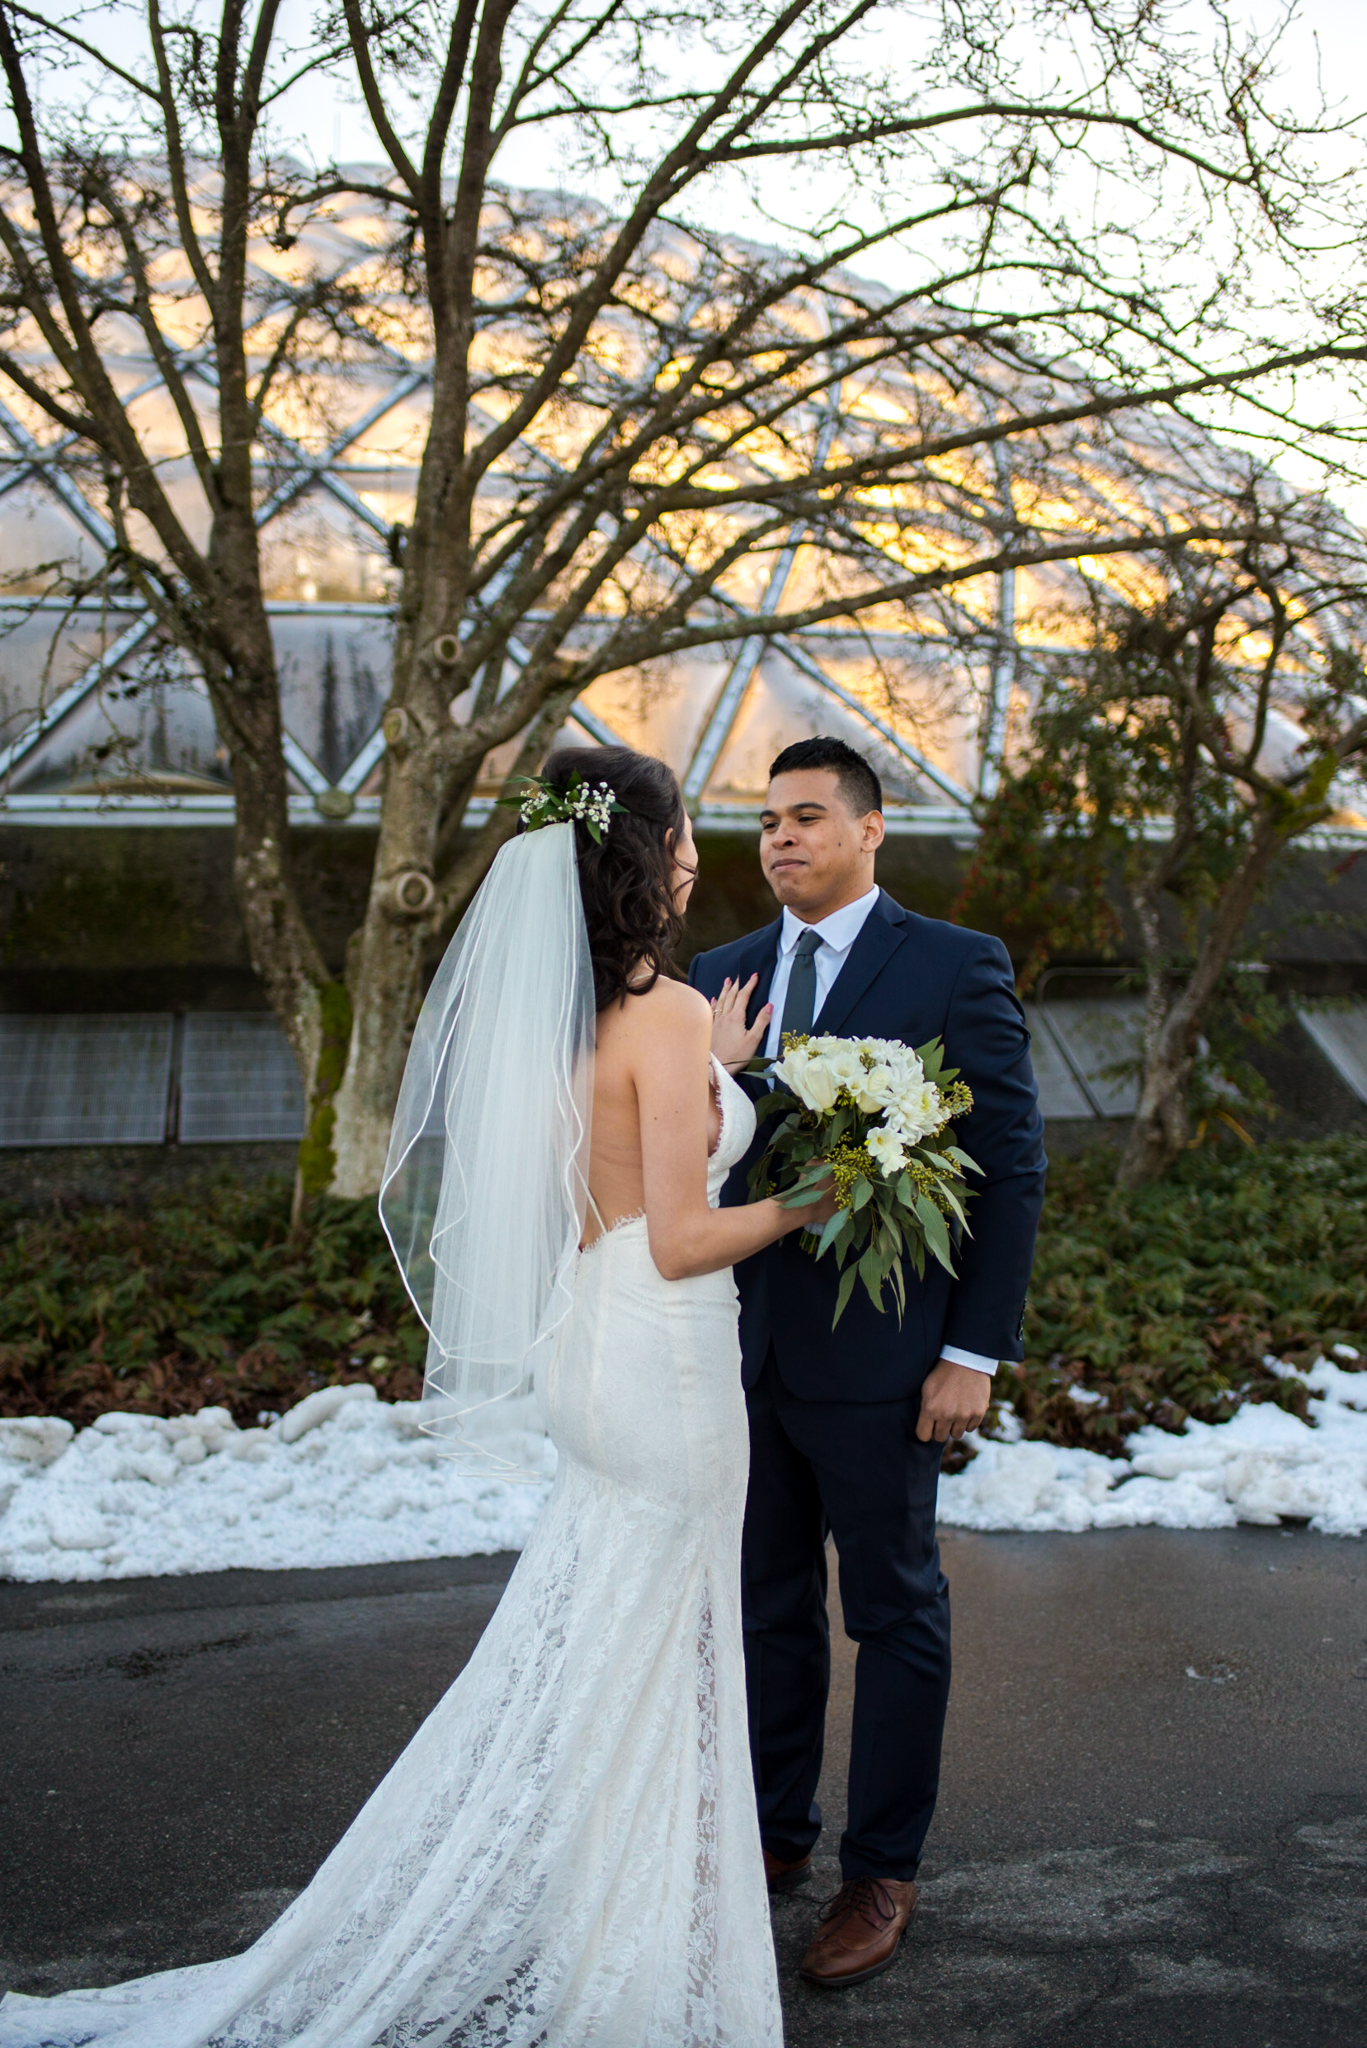 Queen Elizabeth Park Wedding Photographer-11.jpg